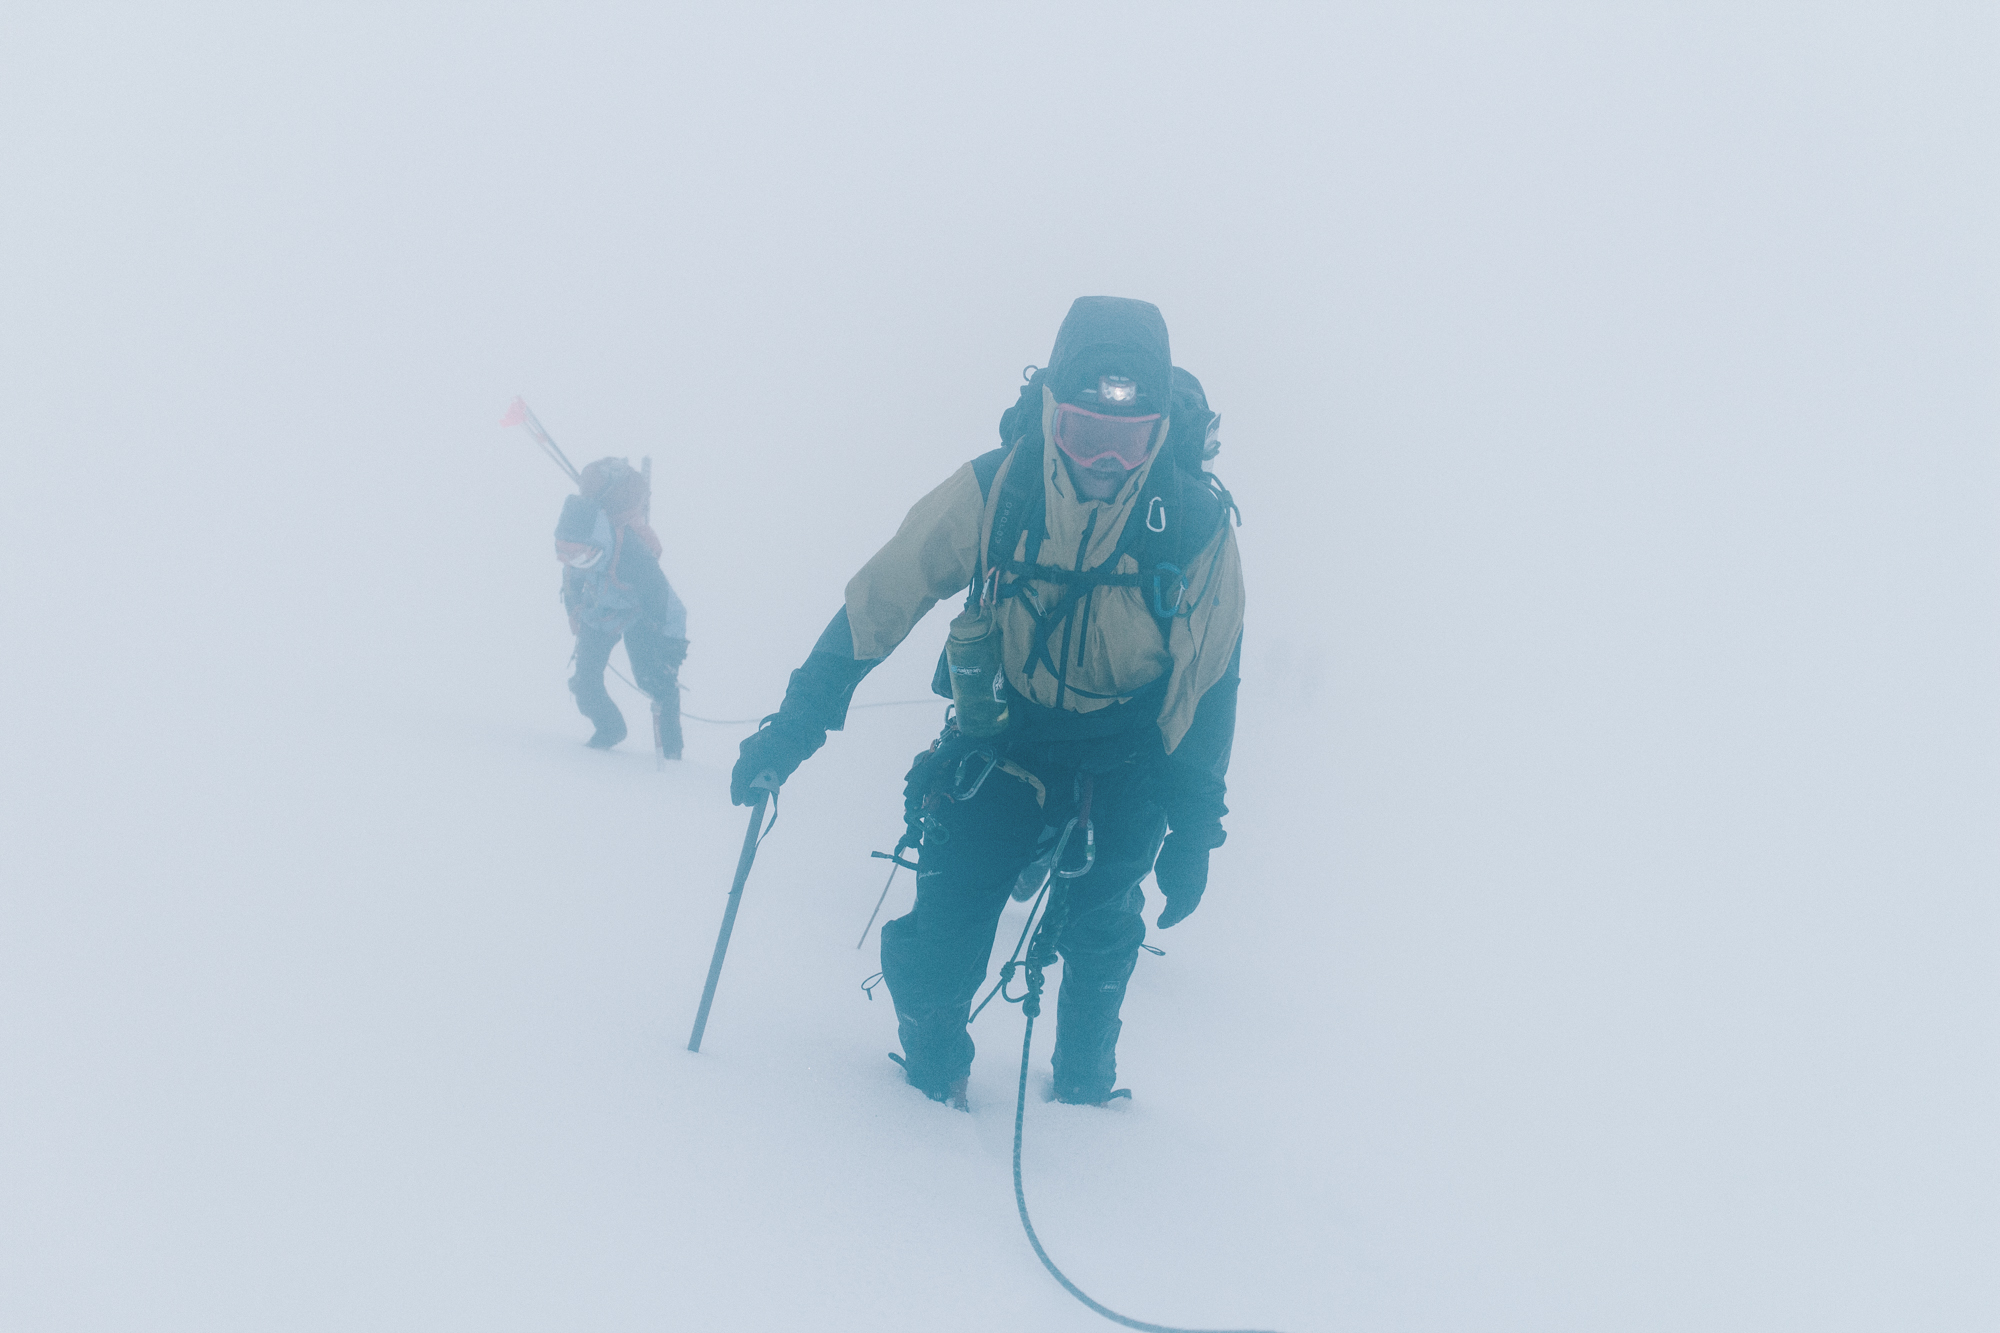 Then we climbed in the whiteout for several hours with freezing rain blowing at us all morning, completely soaked from head to toe.